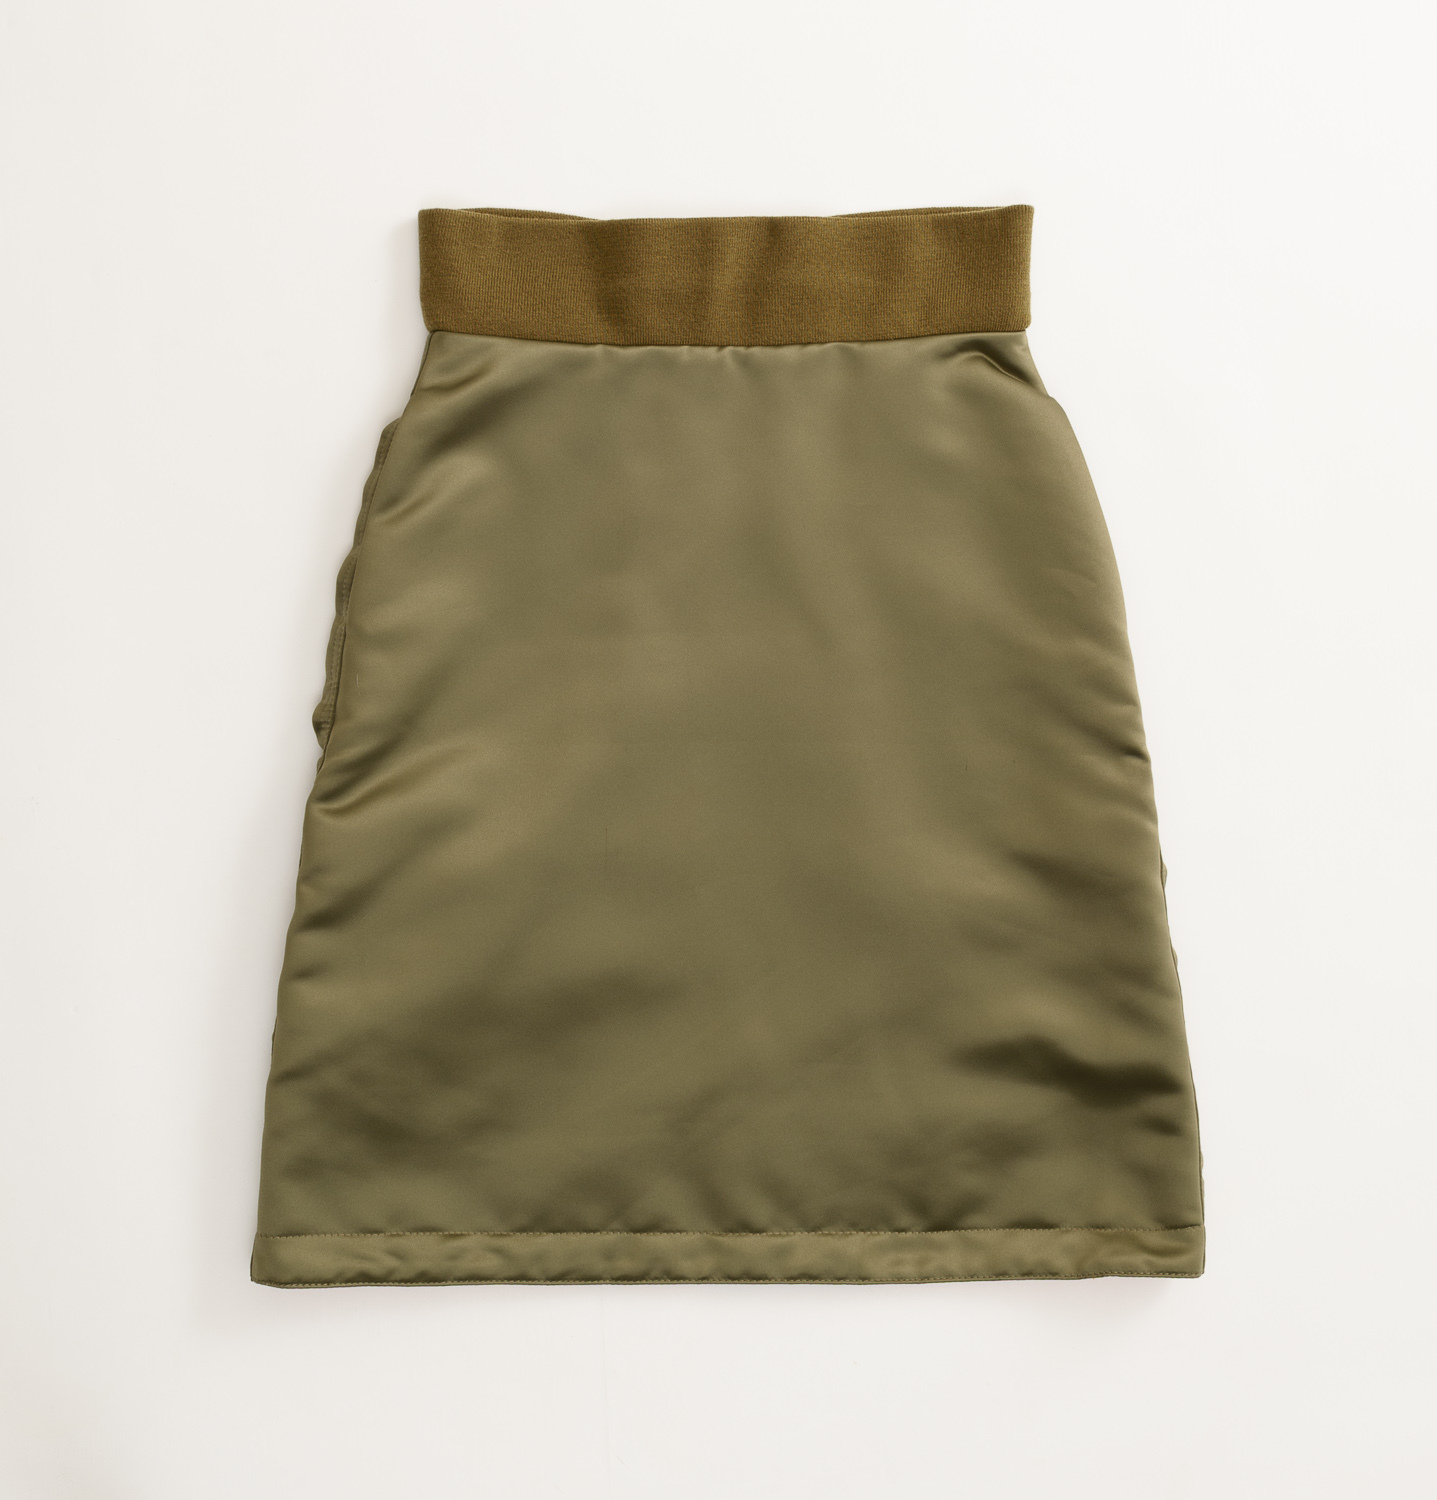 【SON OF THE CHEESE】MA1 SKIRT(OLIVE)